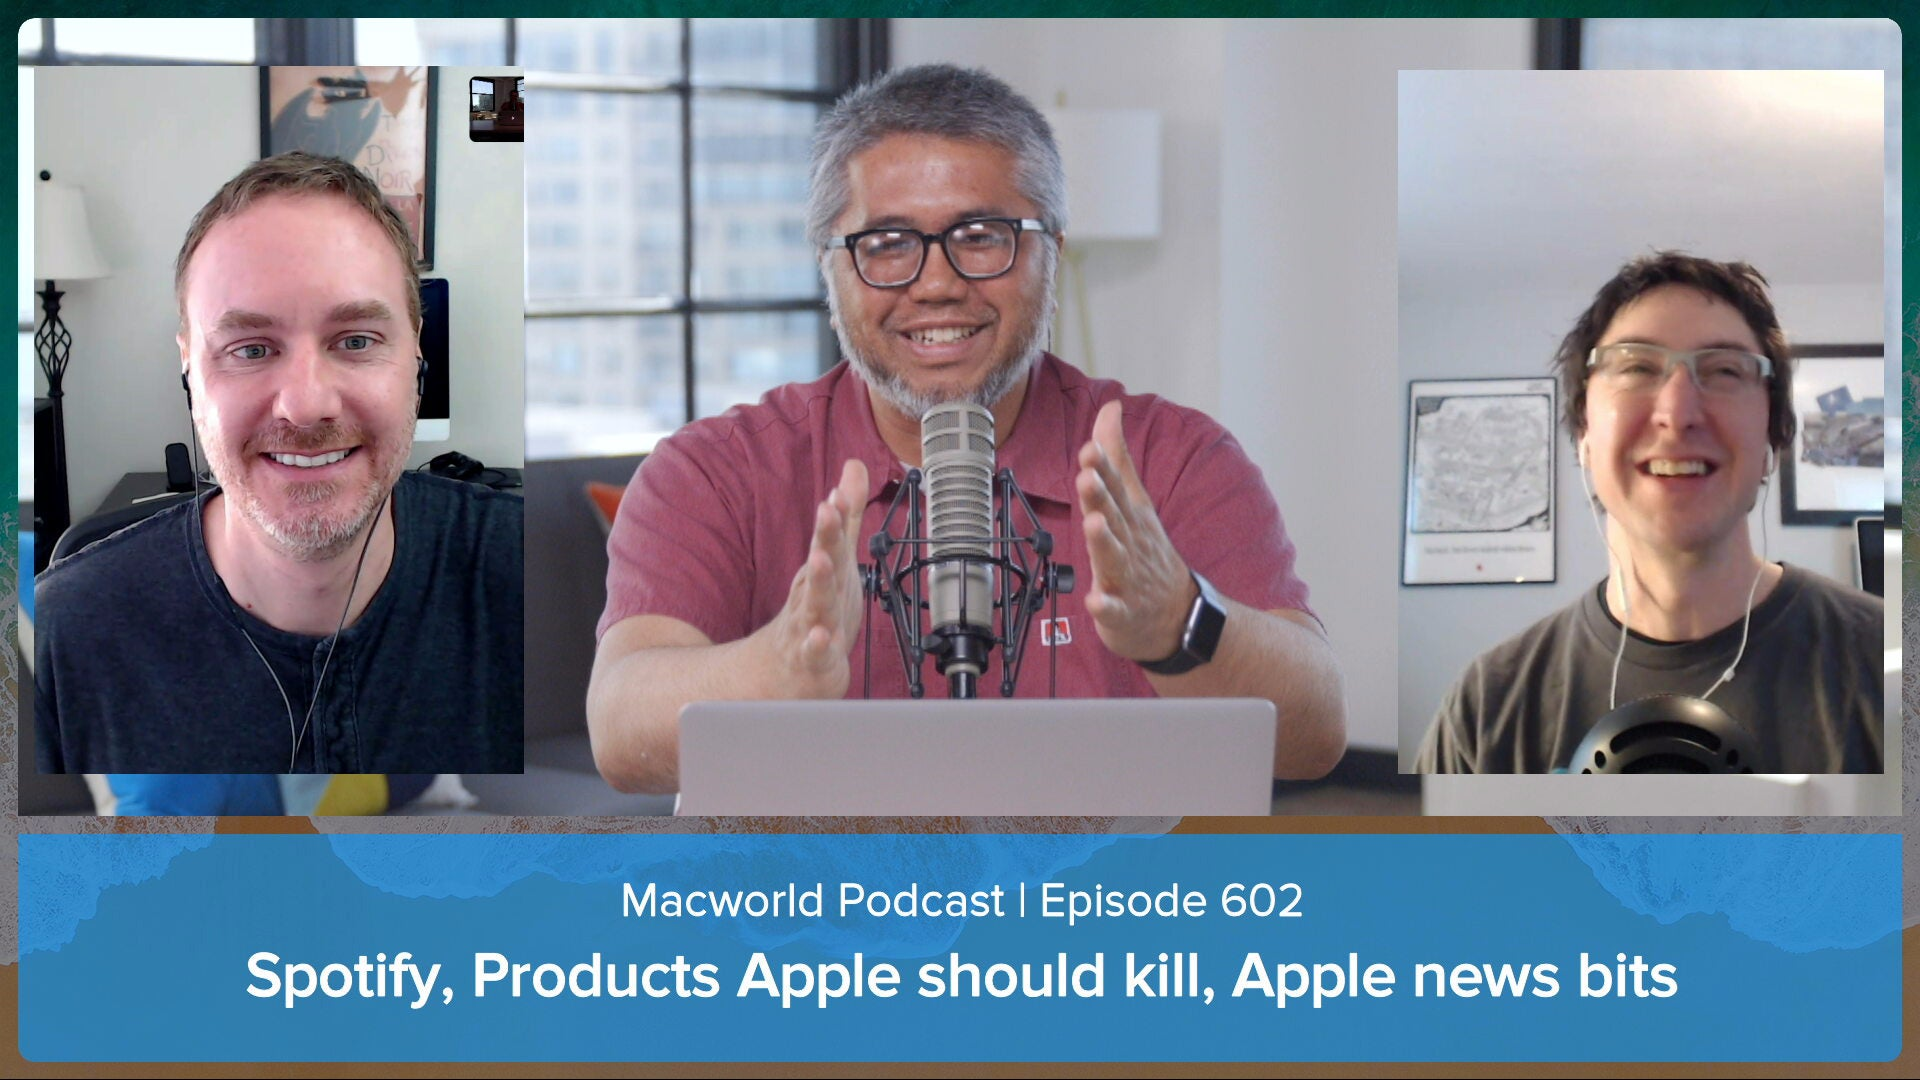 Macworld Podcast episode 602